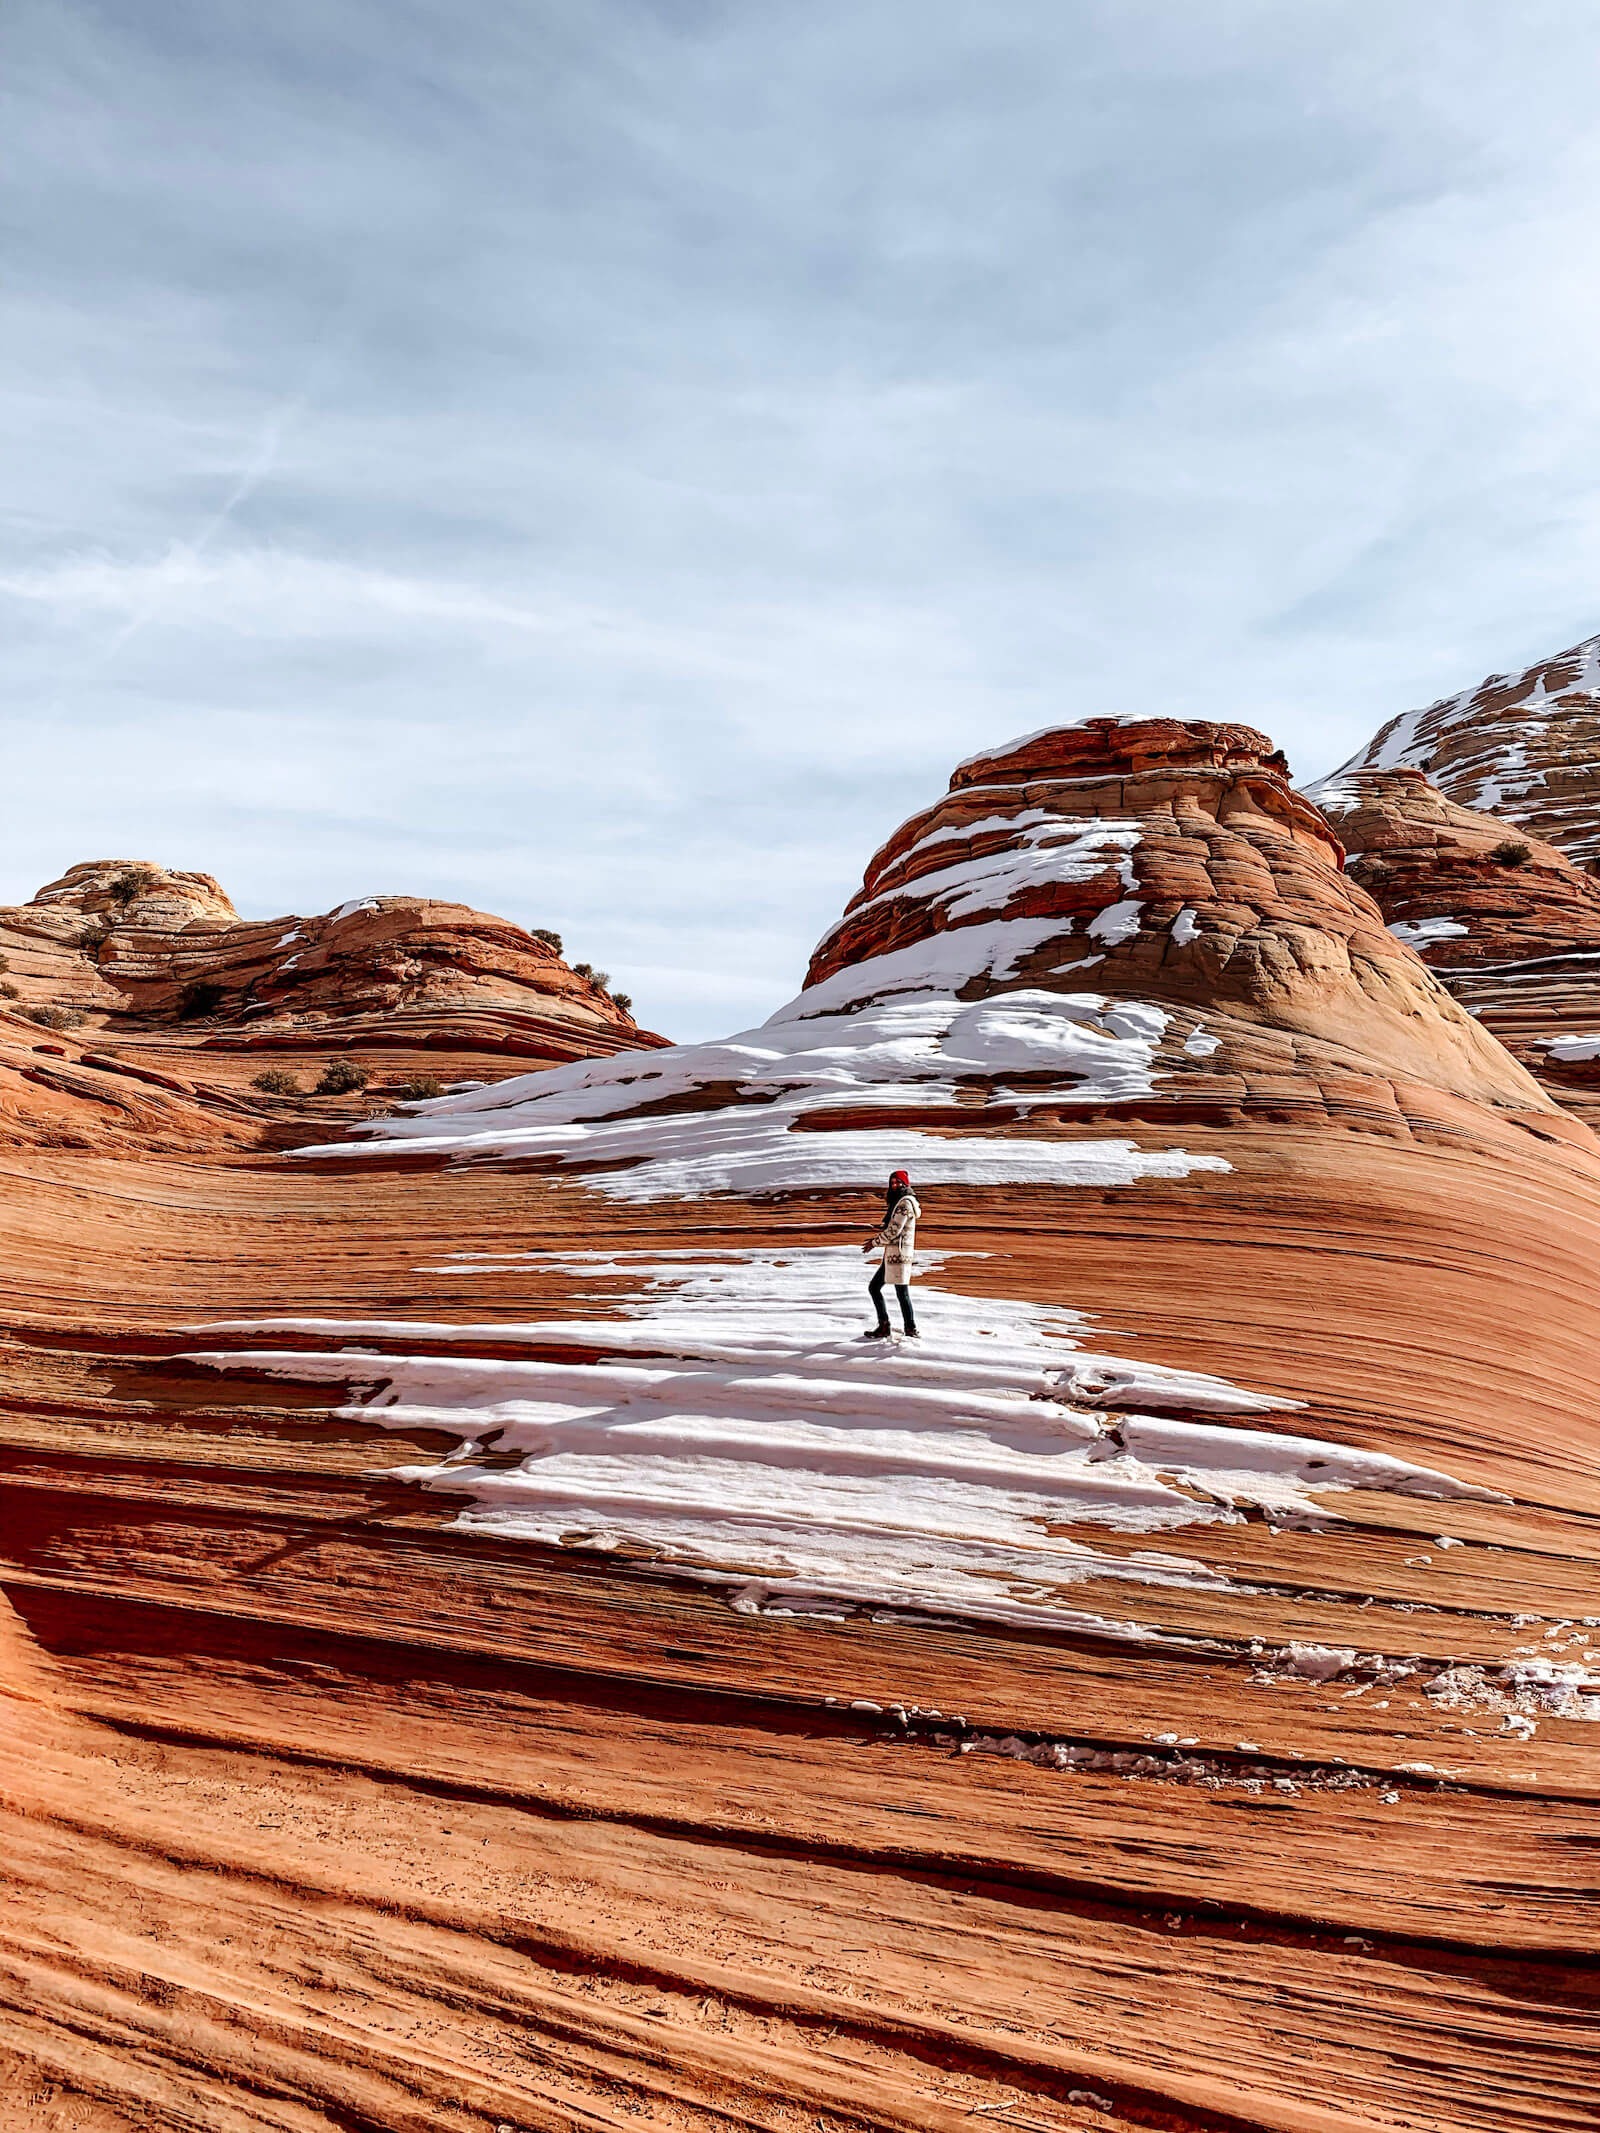 La balade de The Wave en Utah